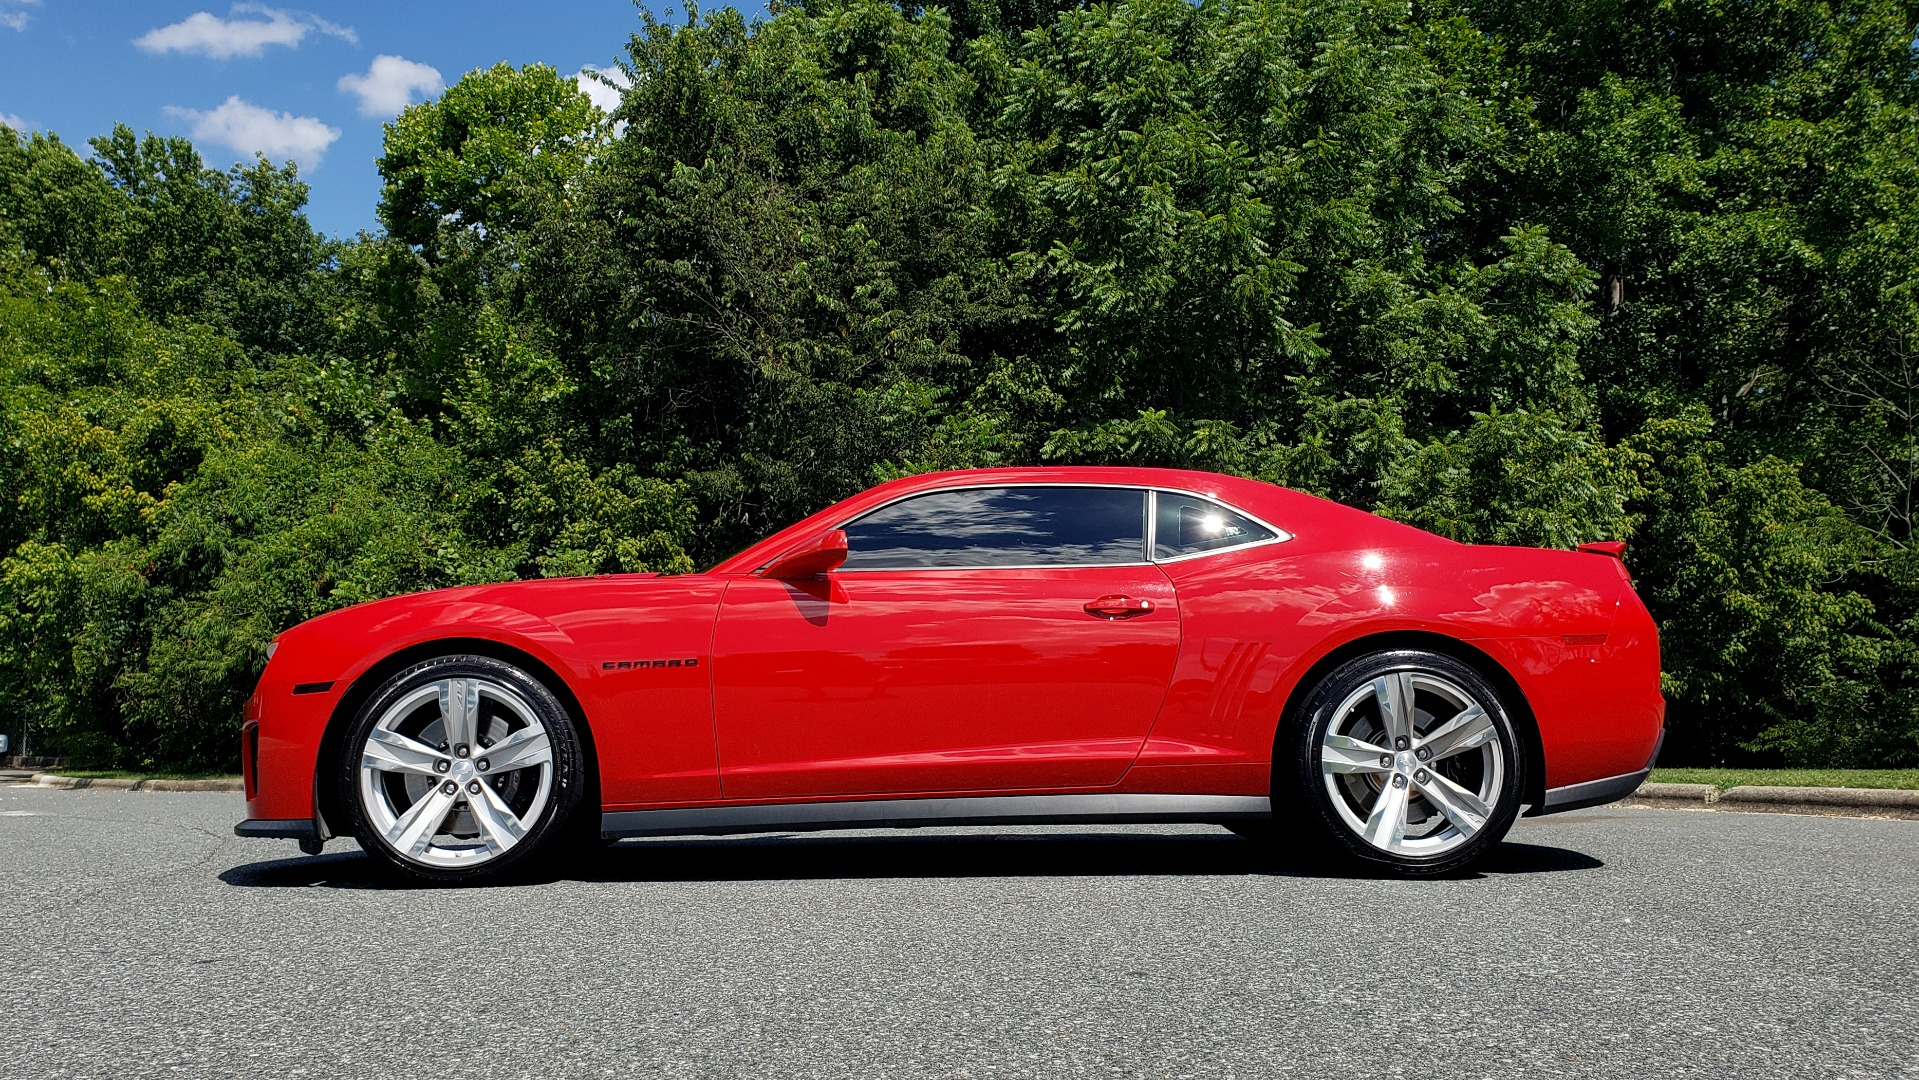 Used 2013 Chevrolet CAMARO ZL1 / 6.2L SUPERCHARGED 580HP / 6-SPD AUTO / NAV / REARVIEW for sale Sold at Formula Imports in Charlotte NC 28227 3